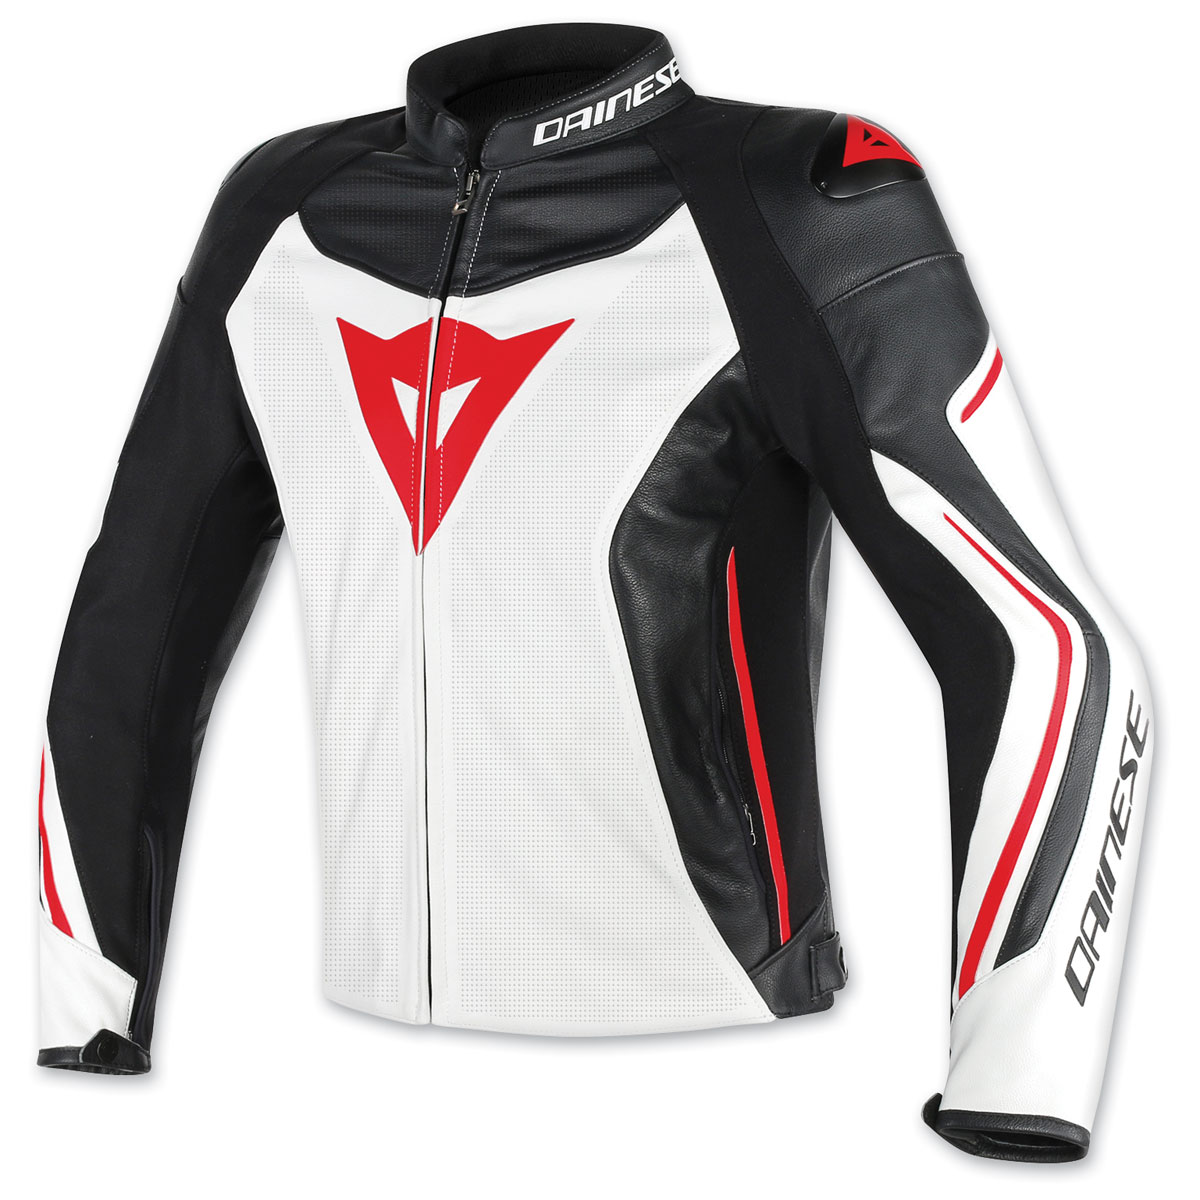 Dainese Men's Assen Perforated White/Black/Red Leather Jacket